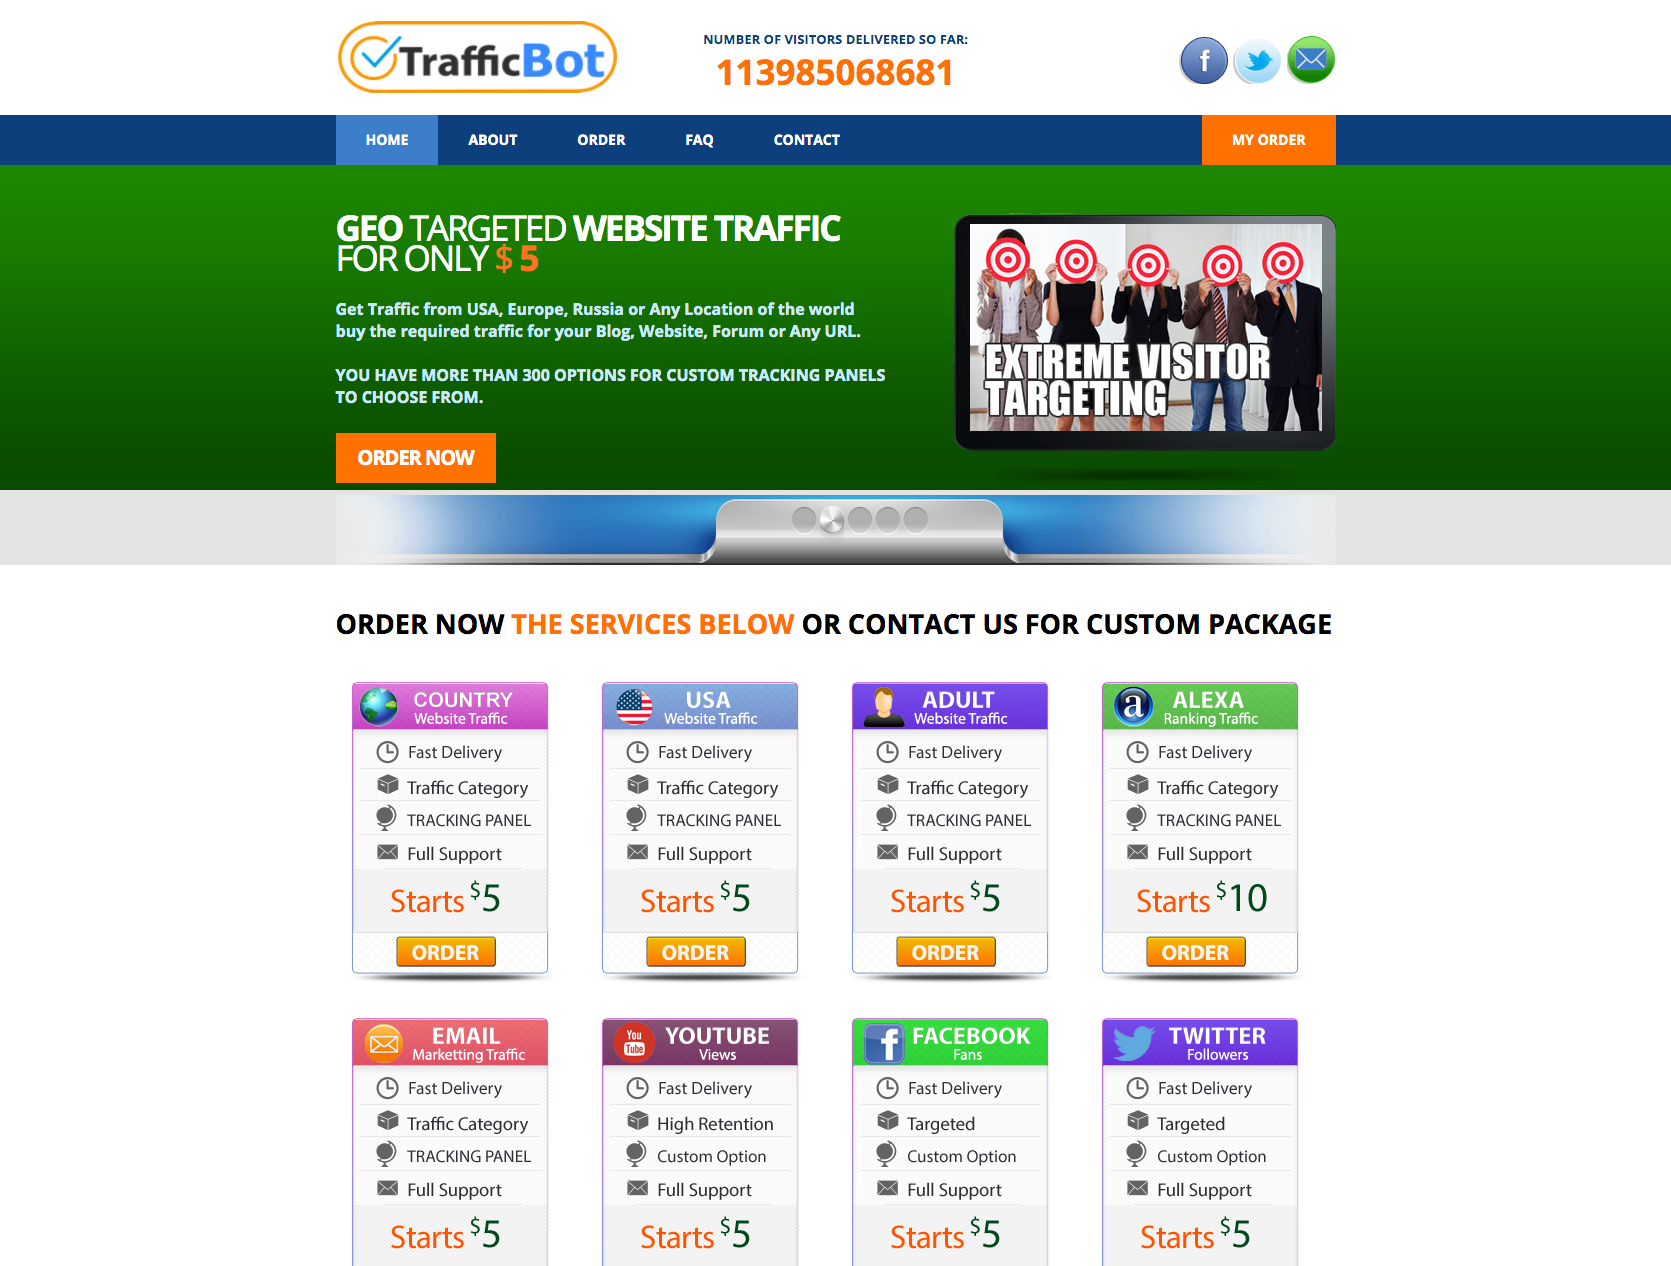 Premium Traffic Reseller Business Website For Sale Profitable & Easy To Manage